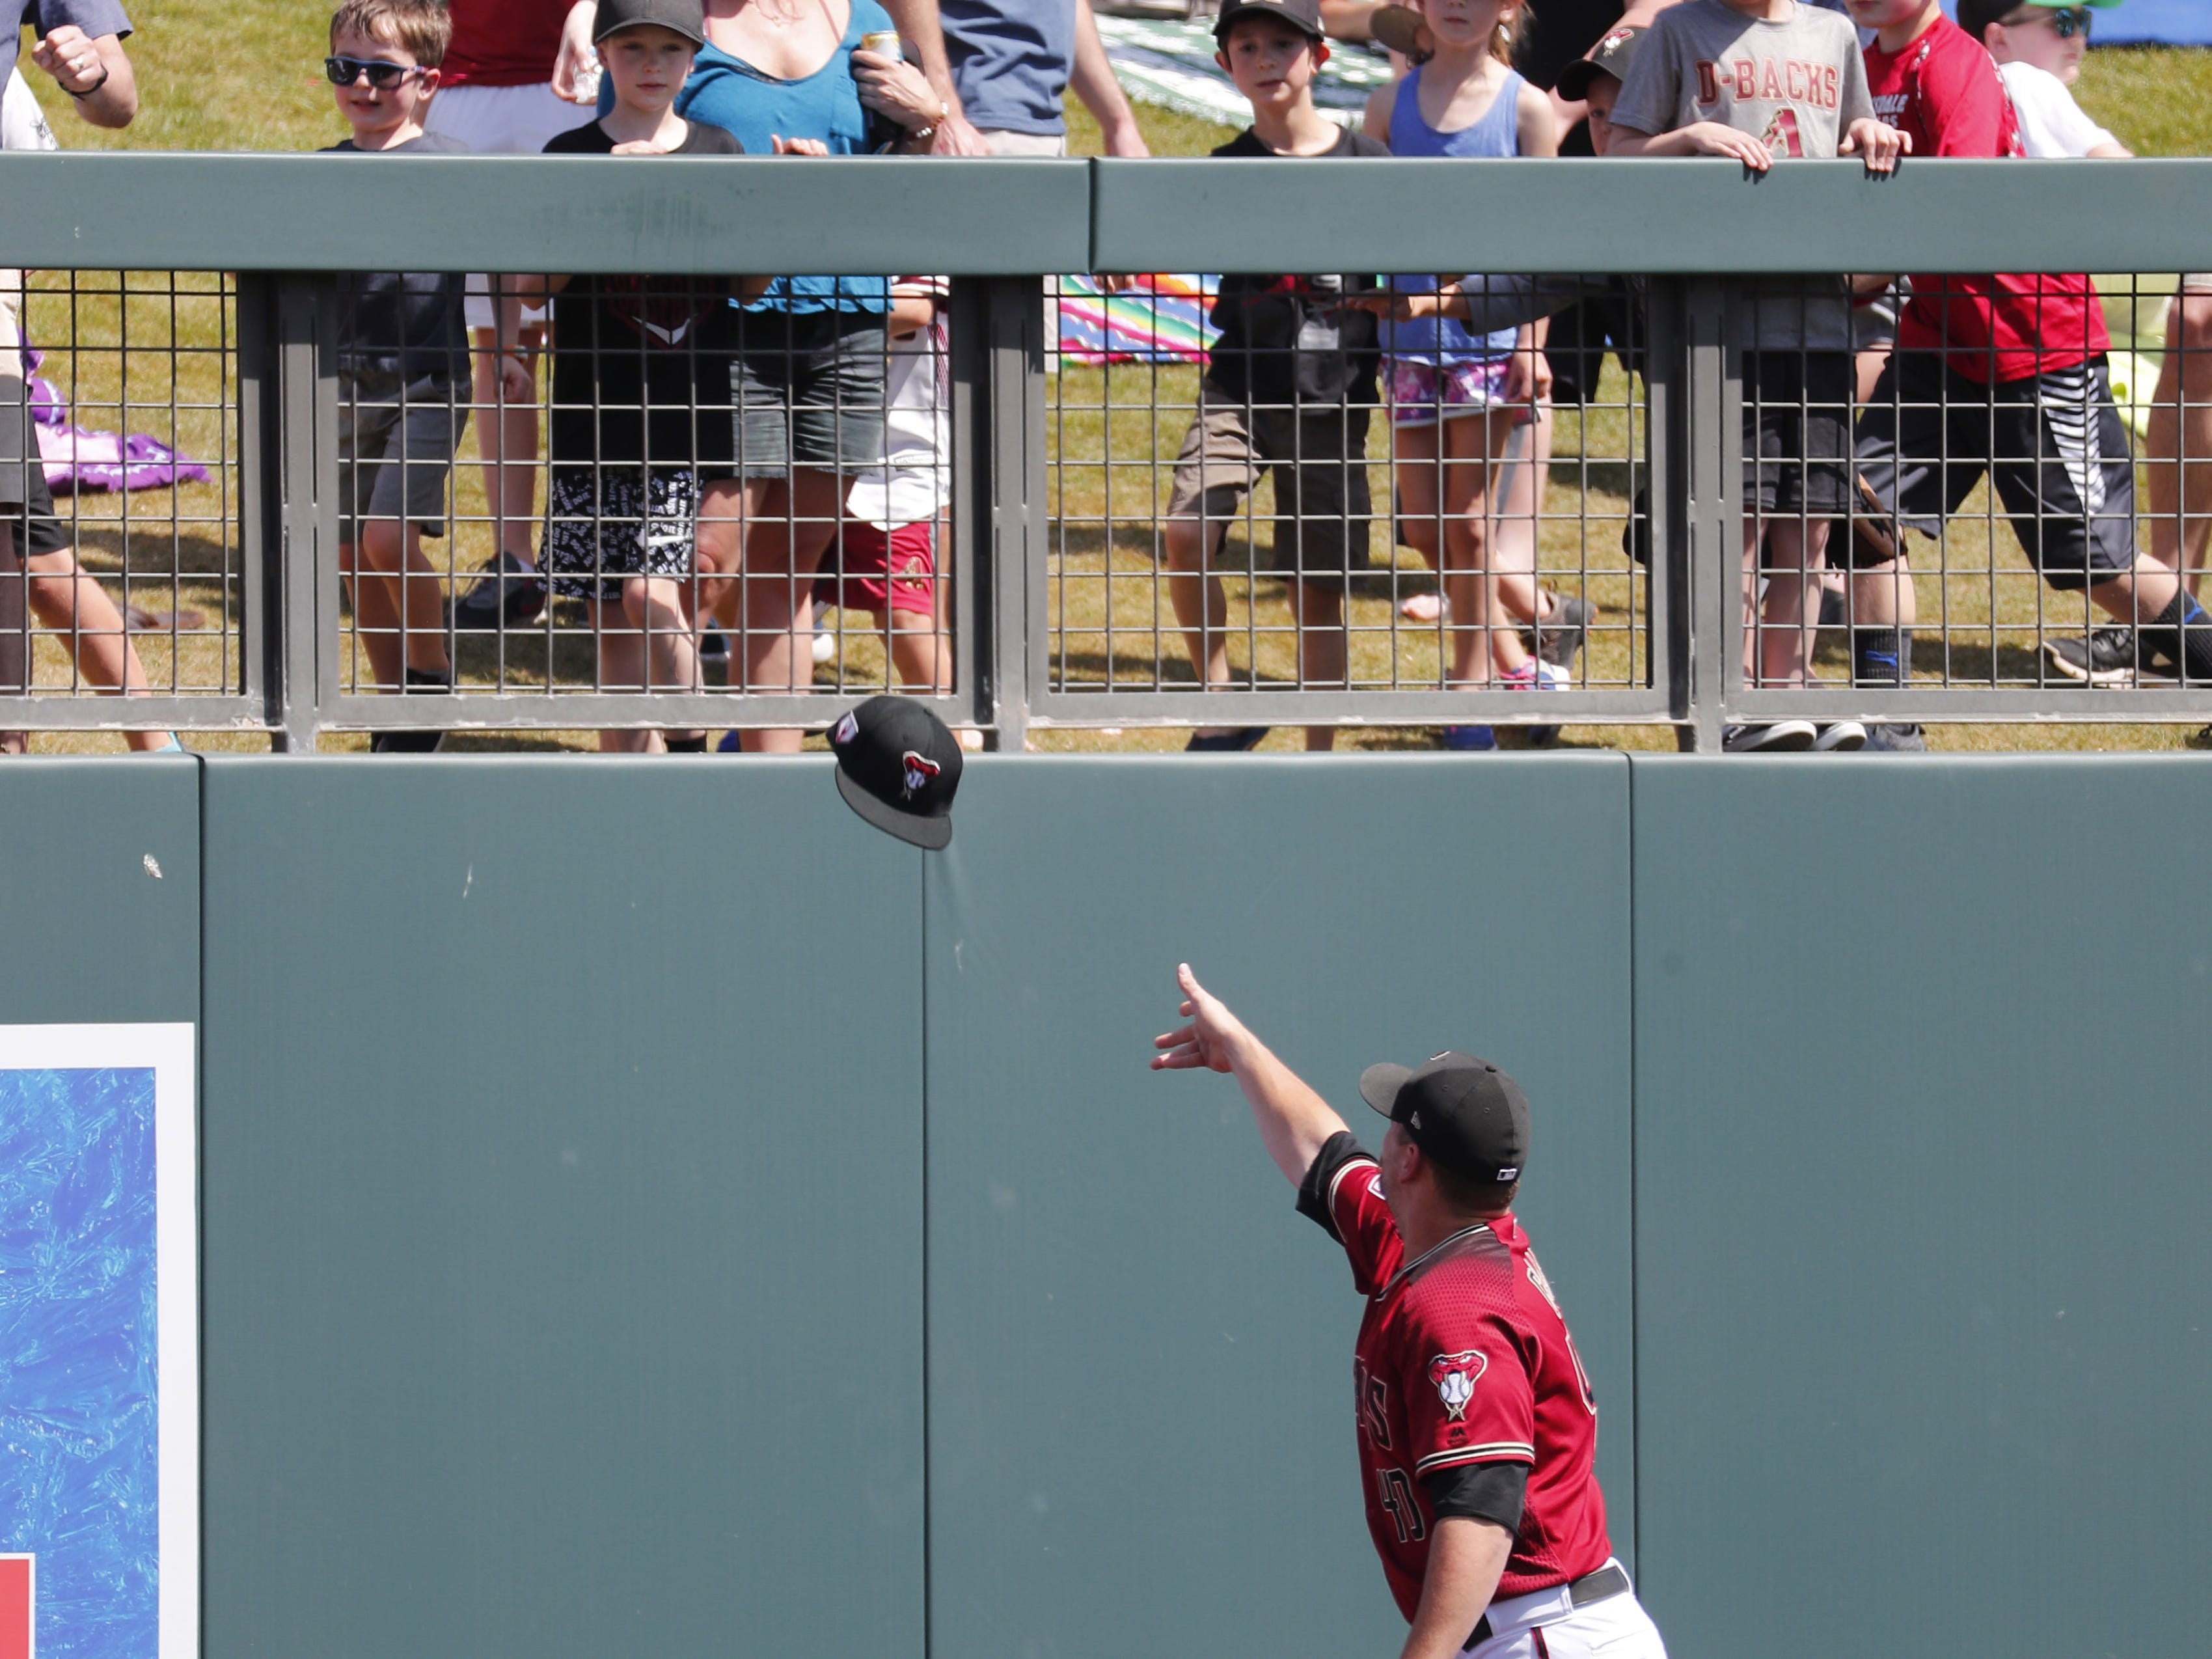 Arizona Diamondbacks relief pitcher Andrew Chafin (40) passes out hats to fans before a spring training game against the Milwaukee Brewers at Salt River Fields at Talking Stick March 24, 2019.